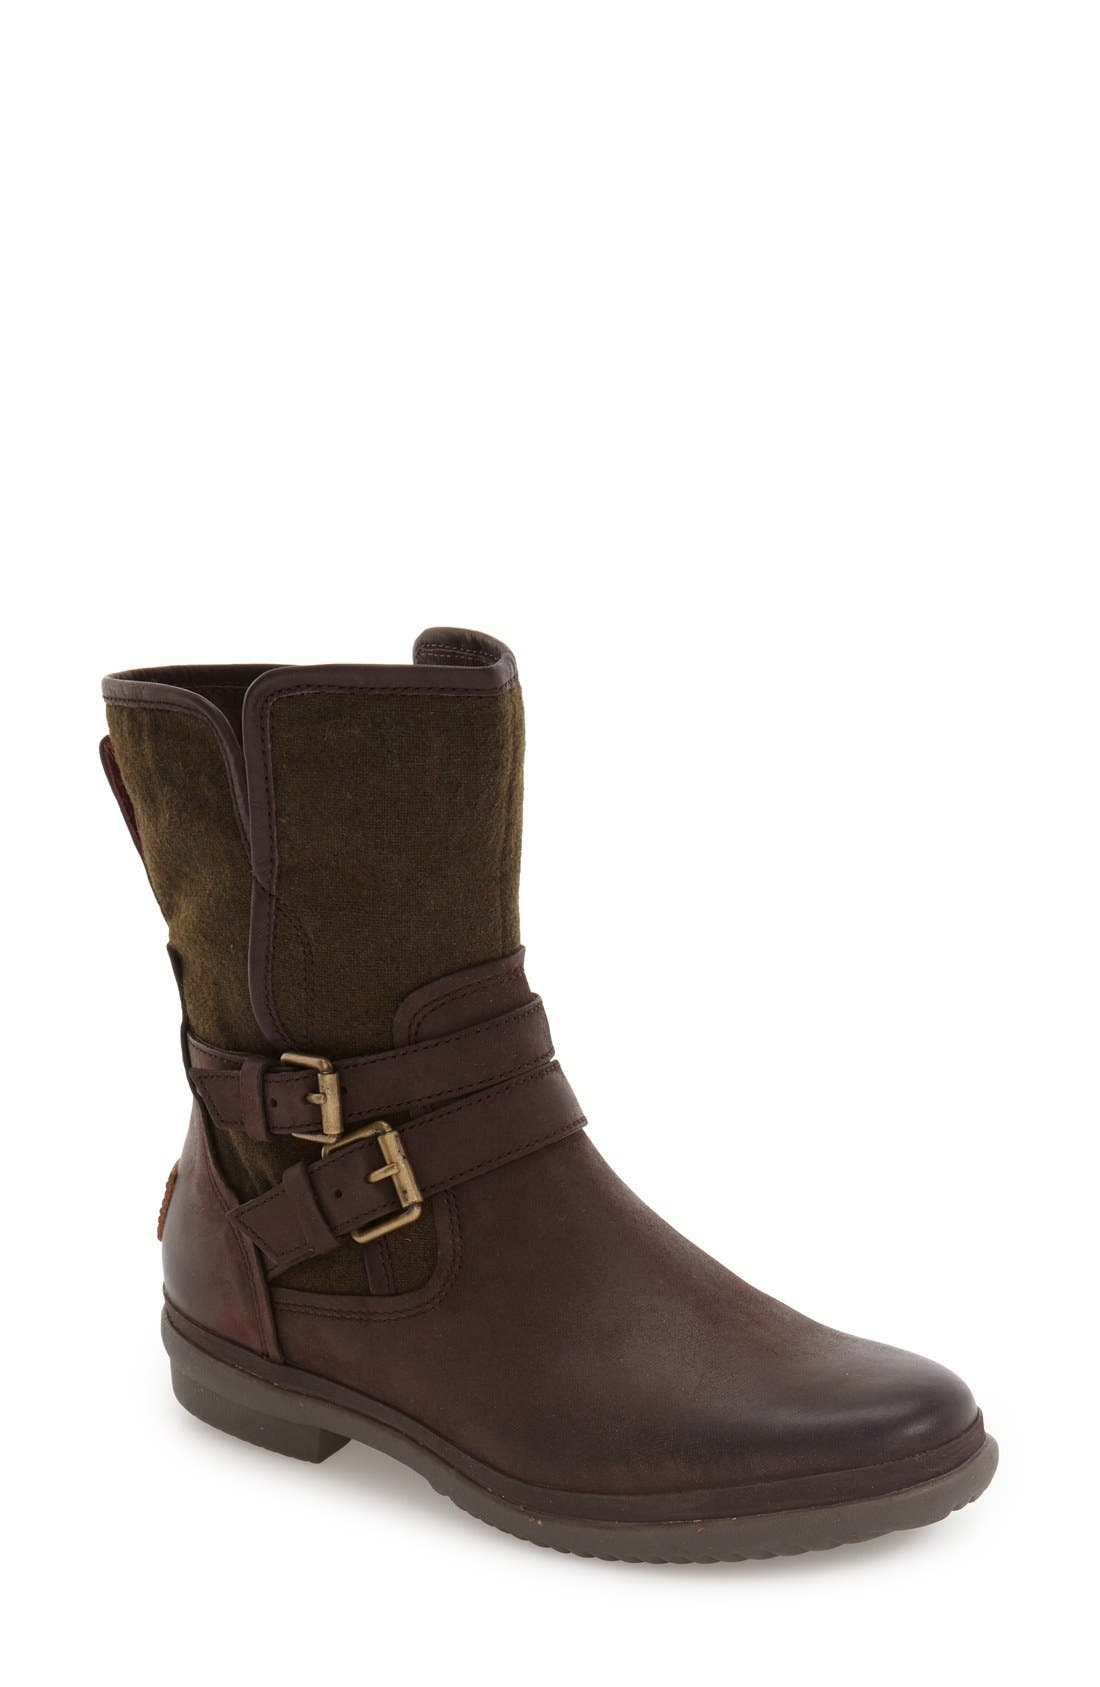 UGG<SUP>®</SUP>, Simmens Waterproof Leather Boot, Main thumbnail 1, color, STOUT WOOL